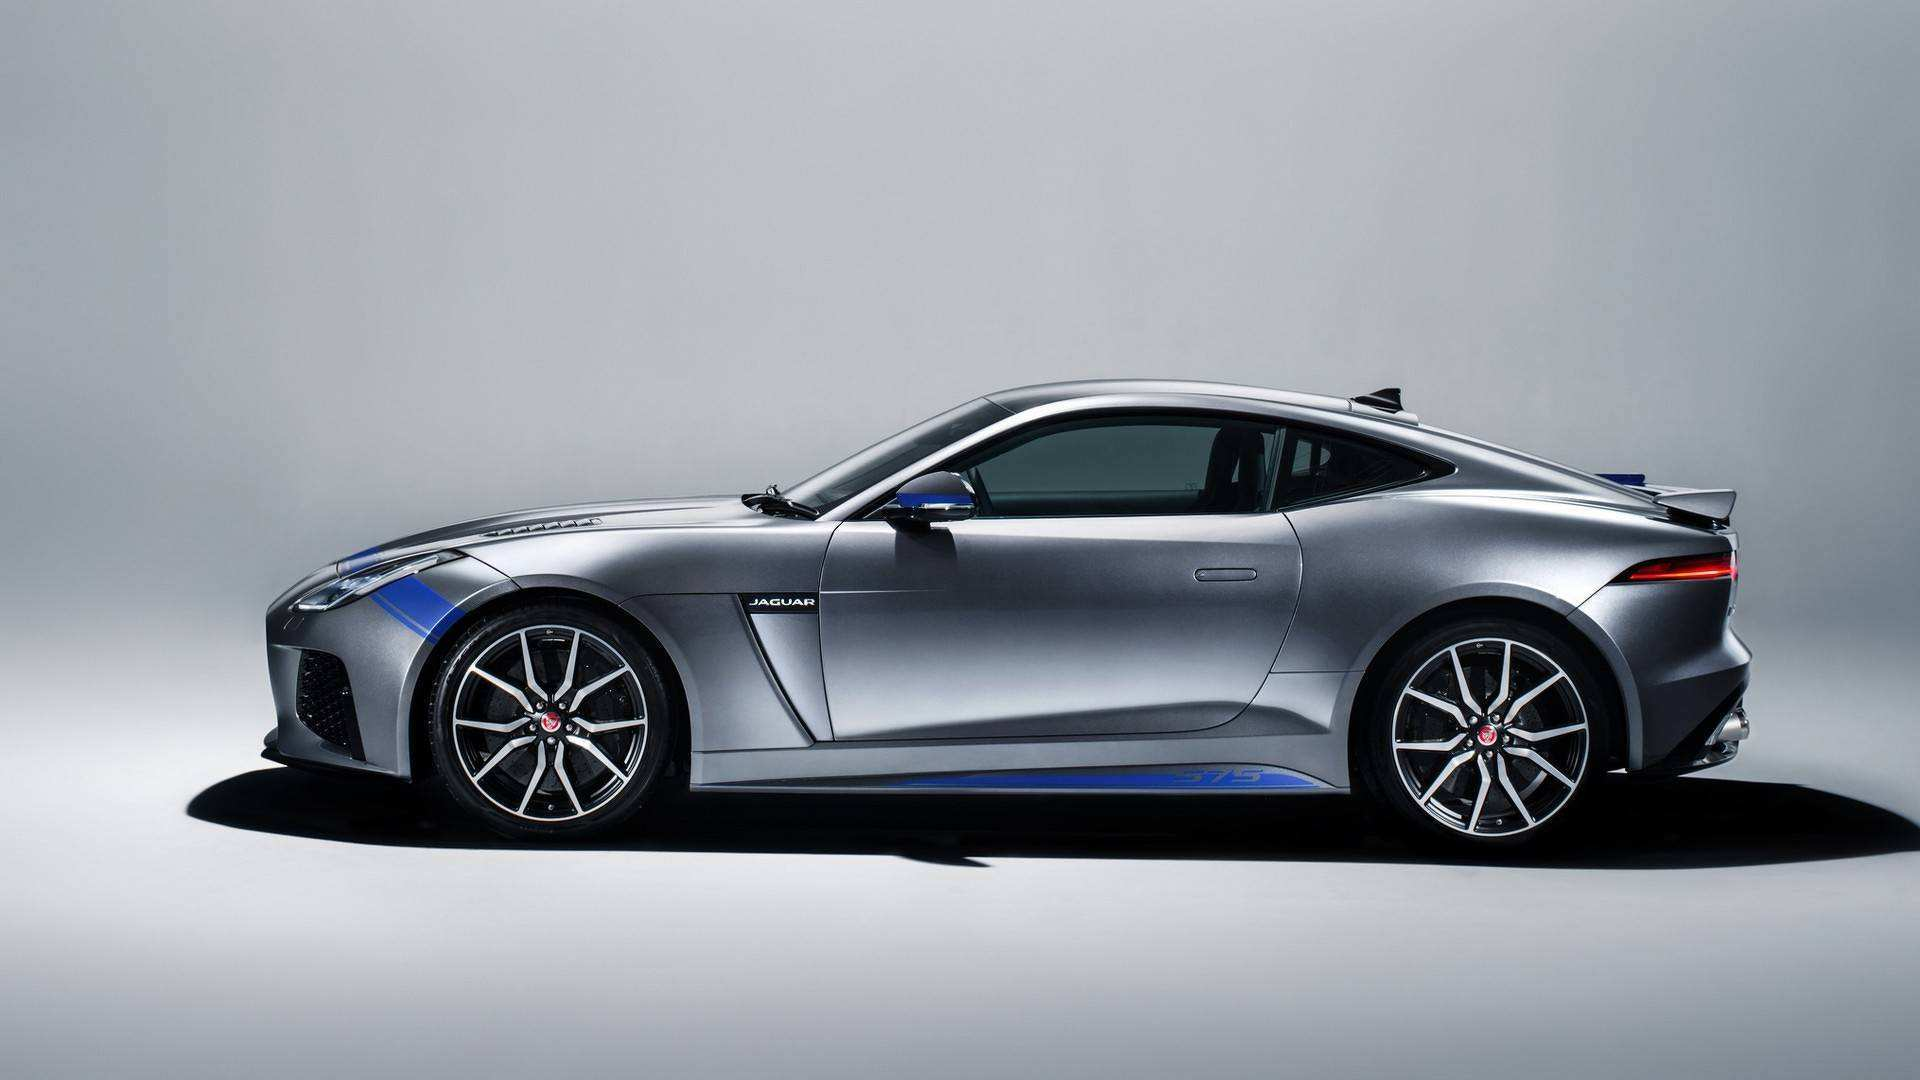 30 Gallery of Jaguar Sport 2020 Wallpaper with Jaguar Sport 2020